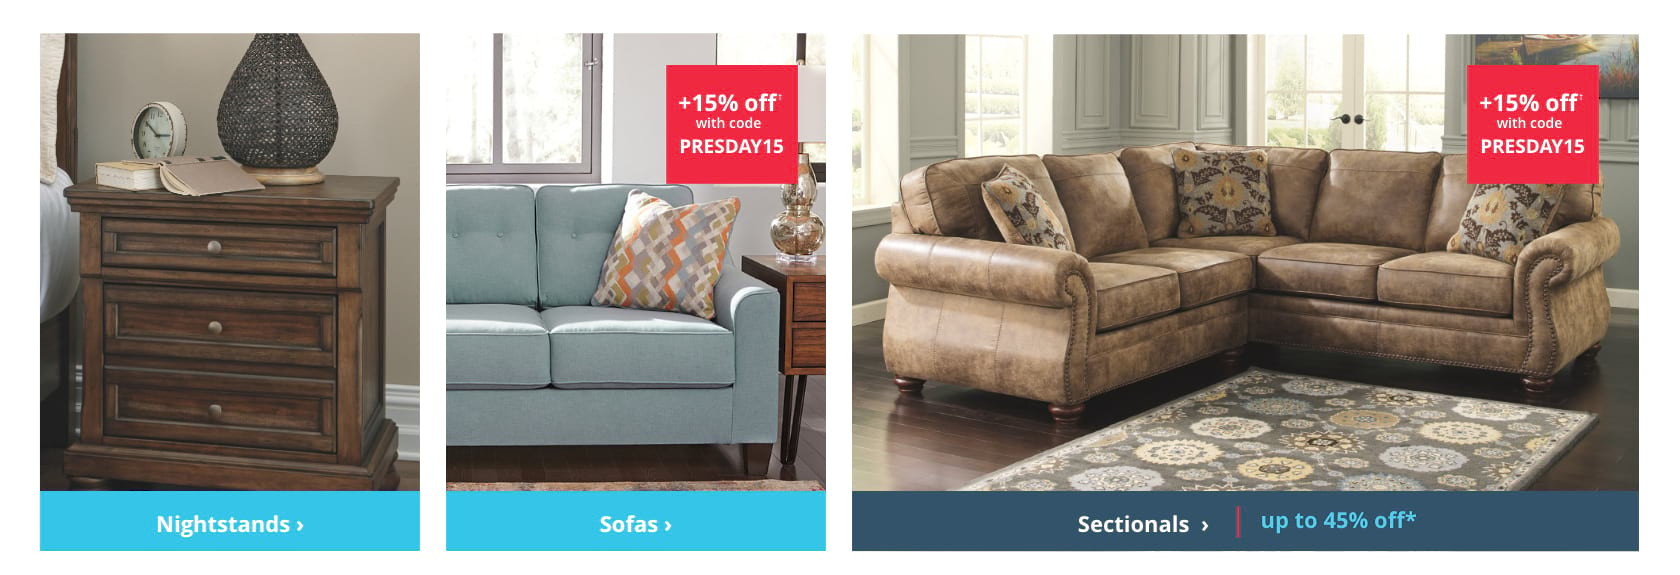 Shop Nightstands, Sofas, Sectionals